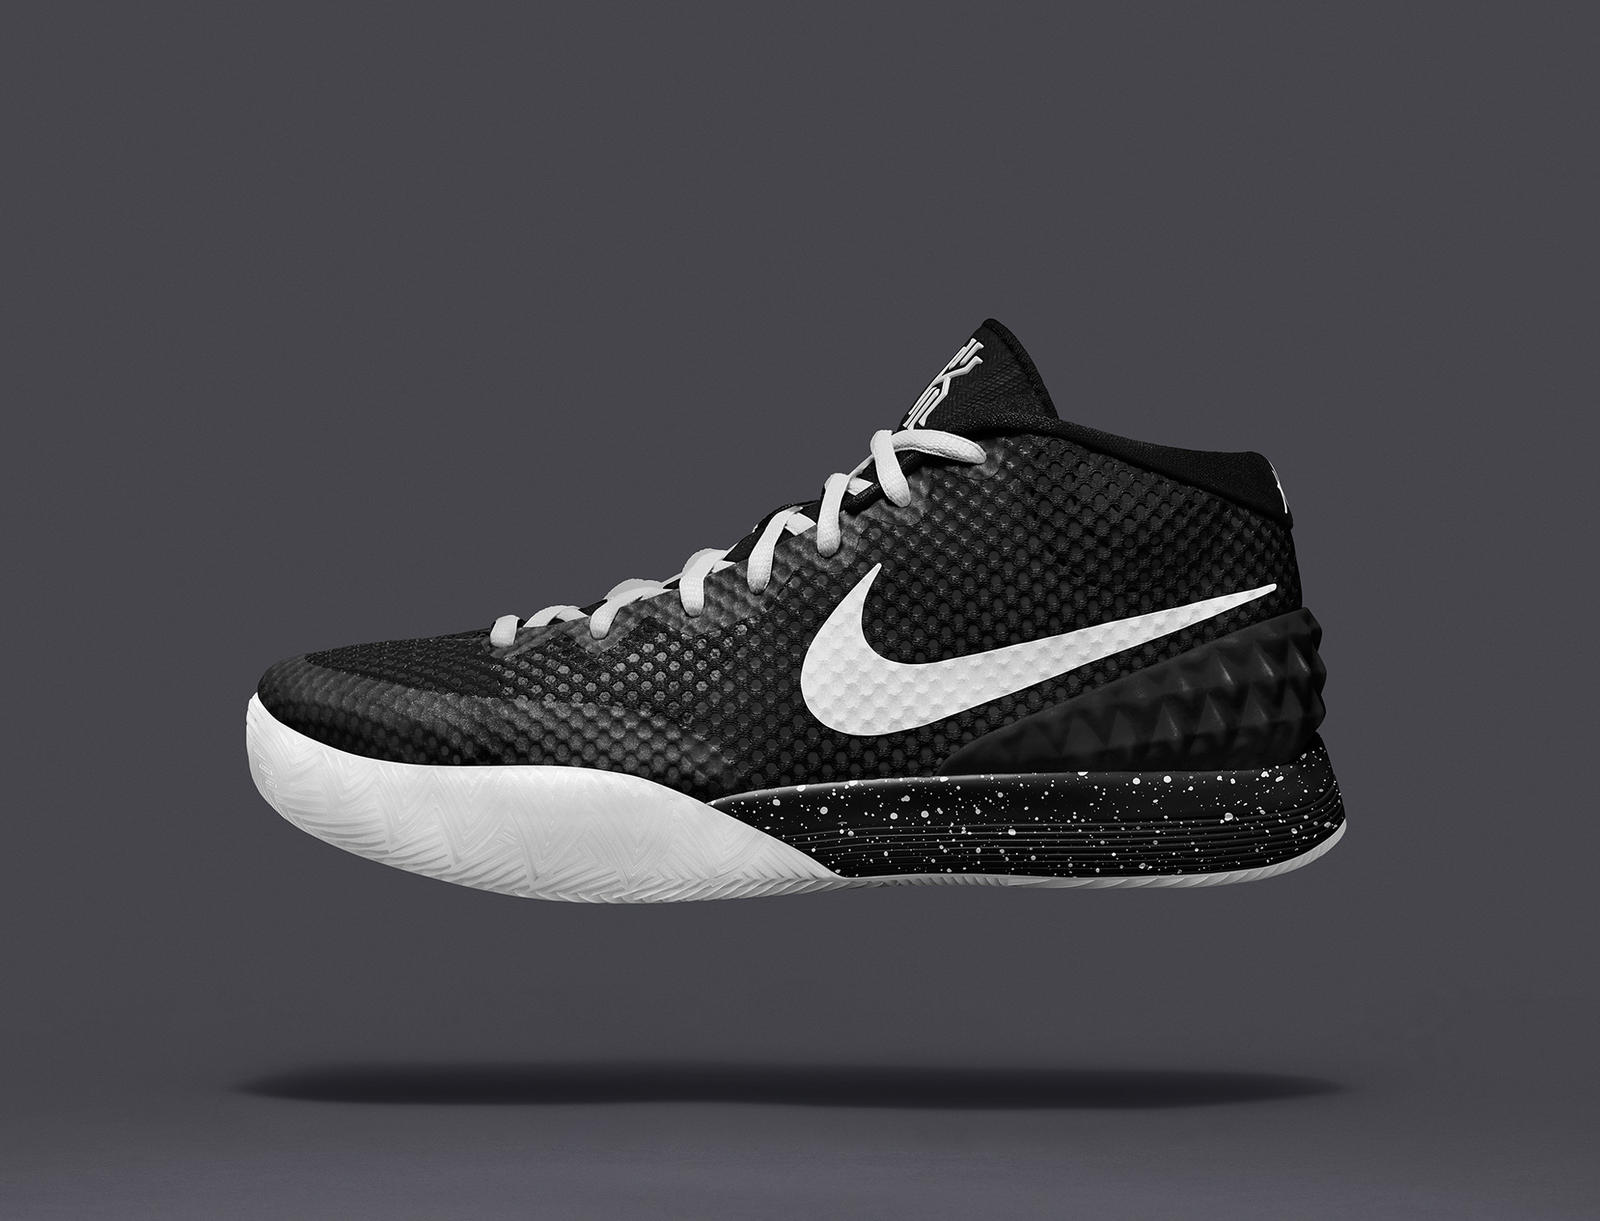 Kyrie Irving Unveils the KYRIE 1 NIKEiD Shoe in Brooklyn ...Kyrie Irving Shoes